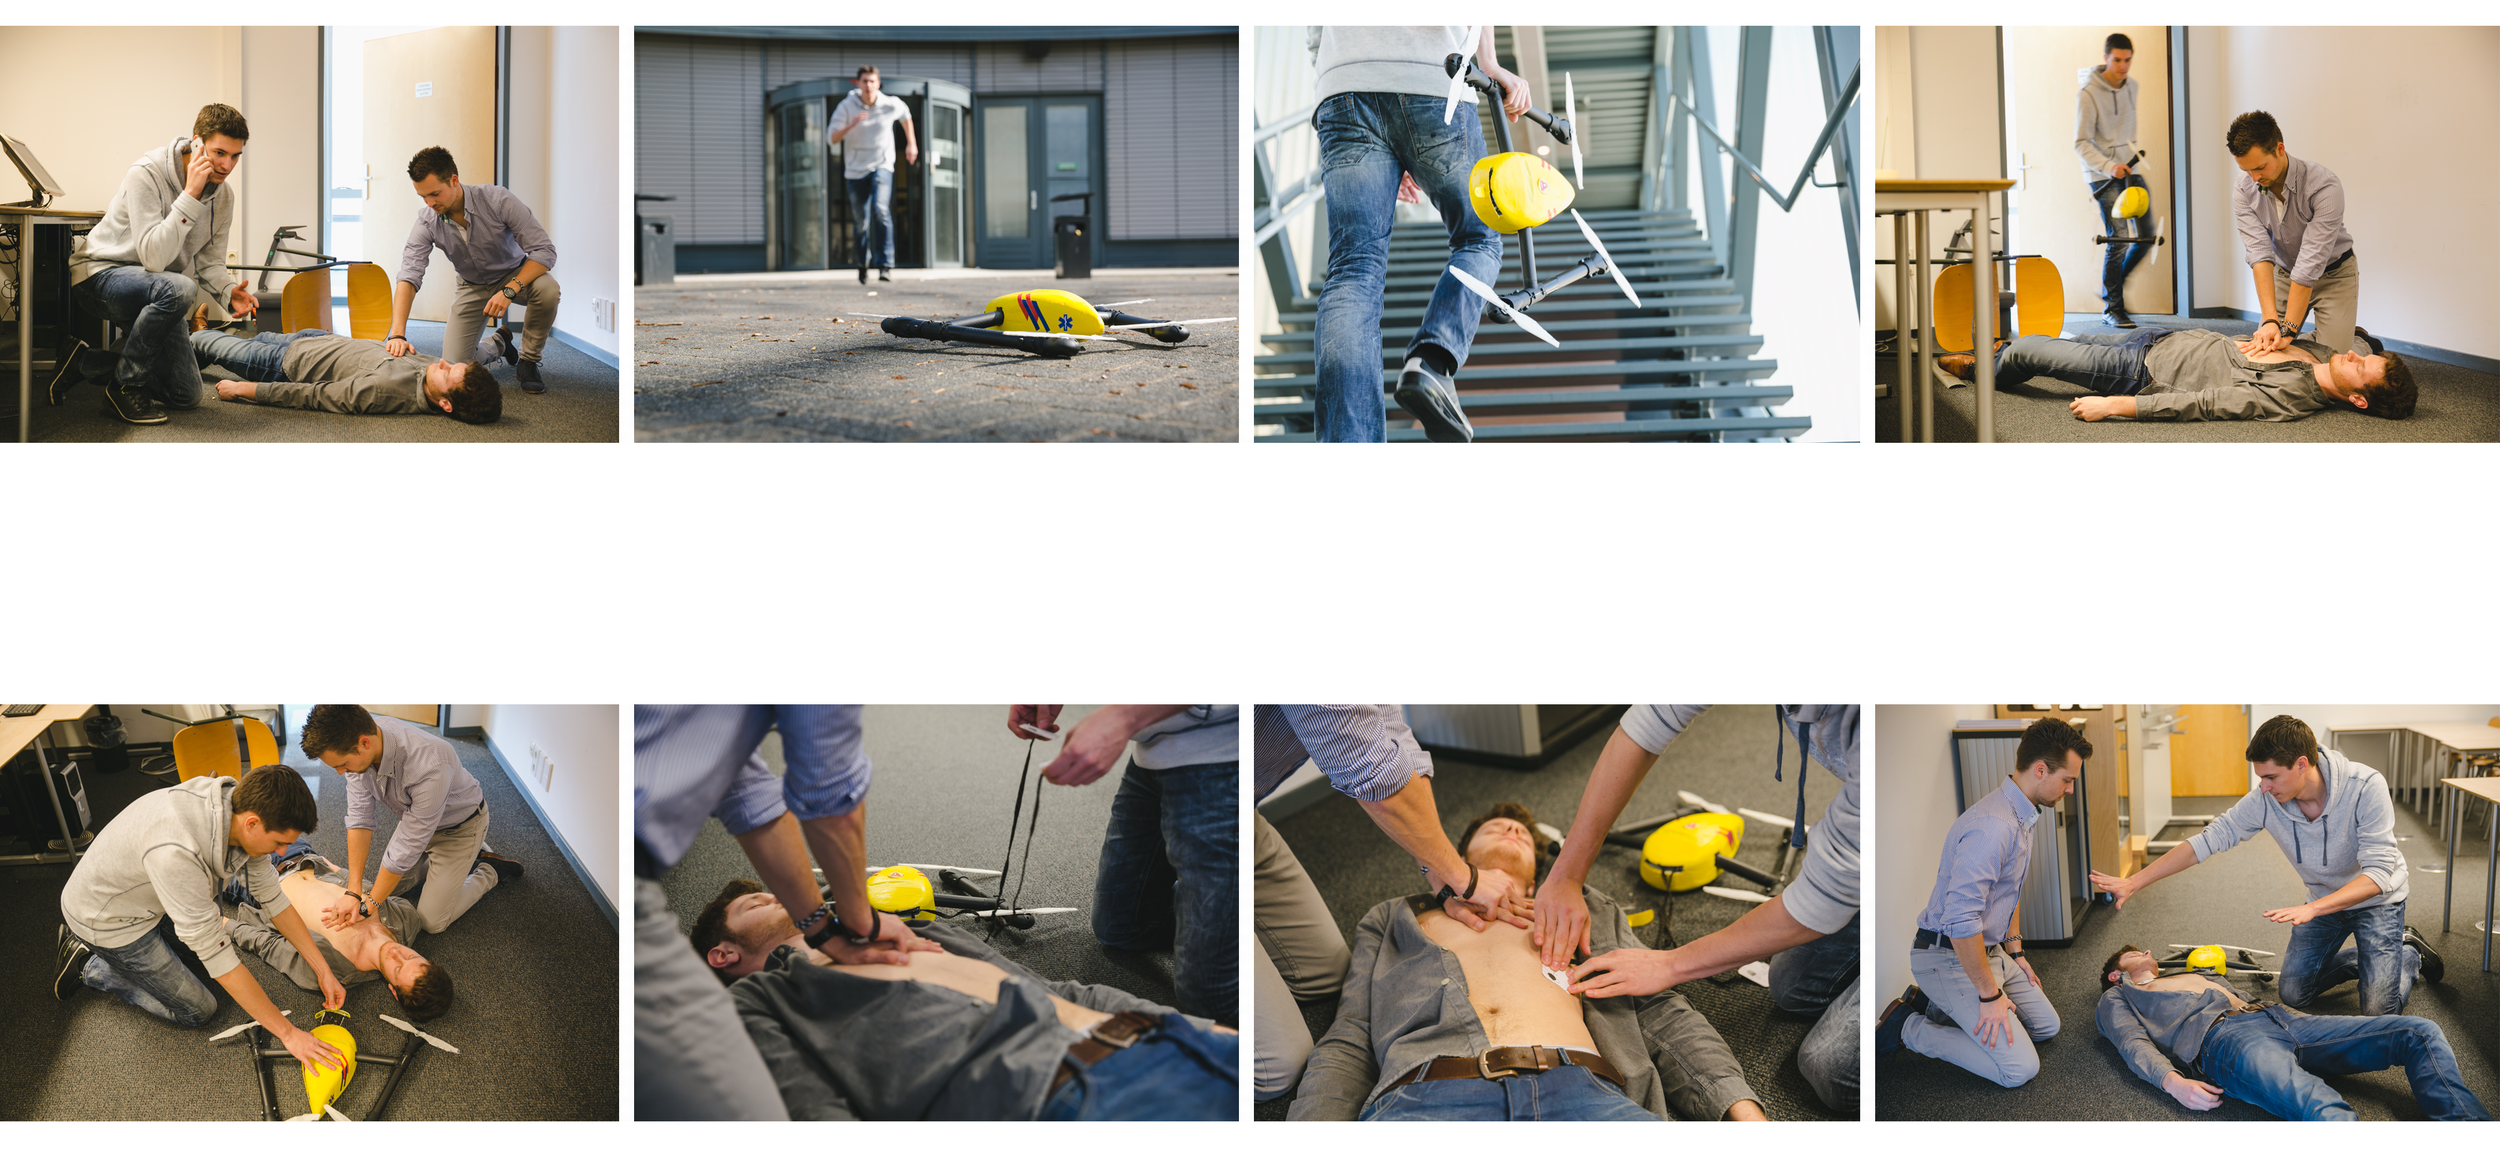 Use case scenario of the ambulance drone in the case of a cardiac arrest. (click to enlarge)